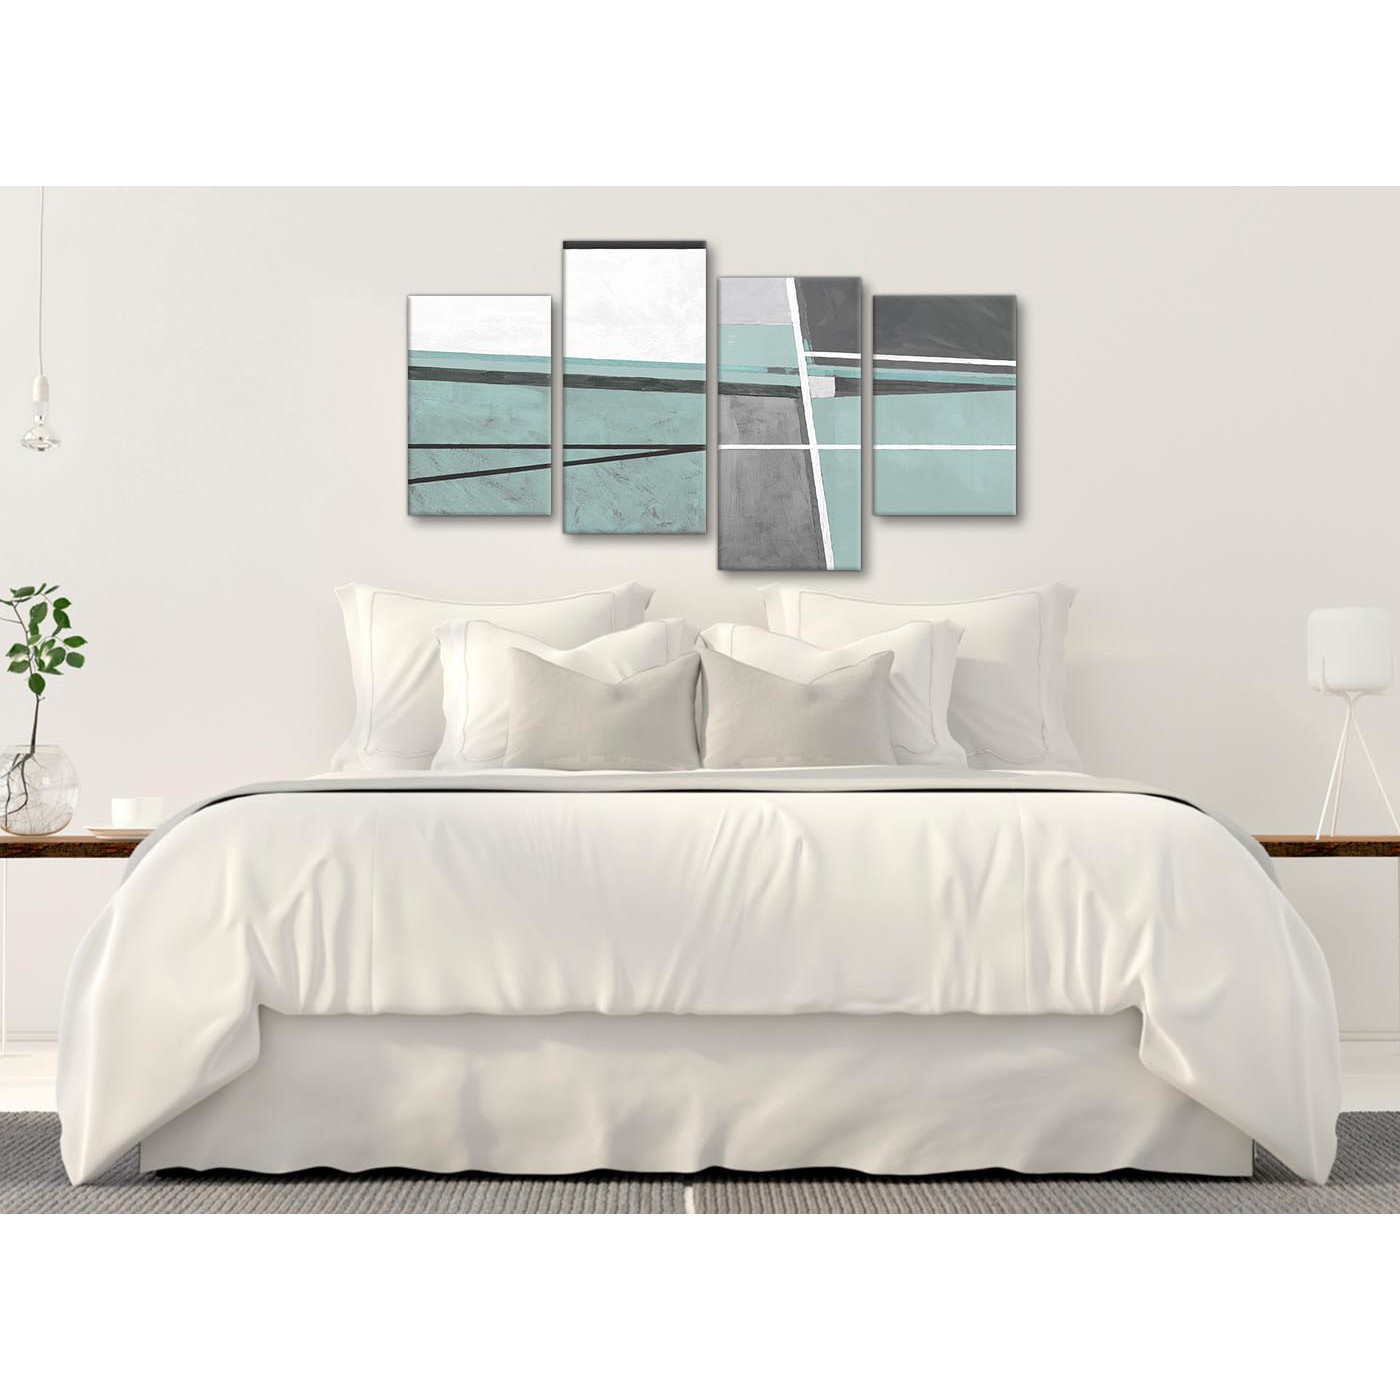 Interior Of Bedroom Wall Duck Egg Blue Bedroom Pictures Bedroom With Single Bed Bedroom Curtains Uk: Large Duck Egg Blue Grey Painting Abstract Bedroom Canvas